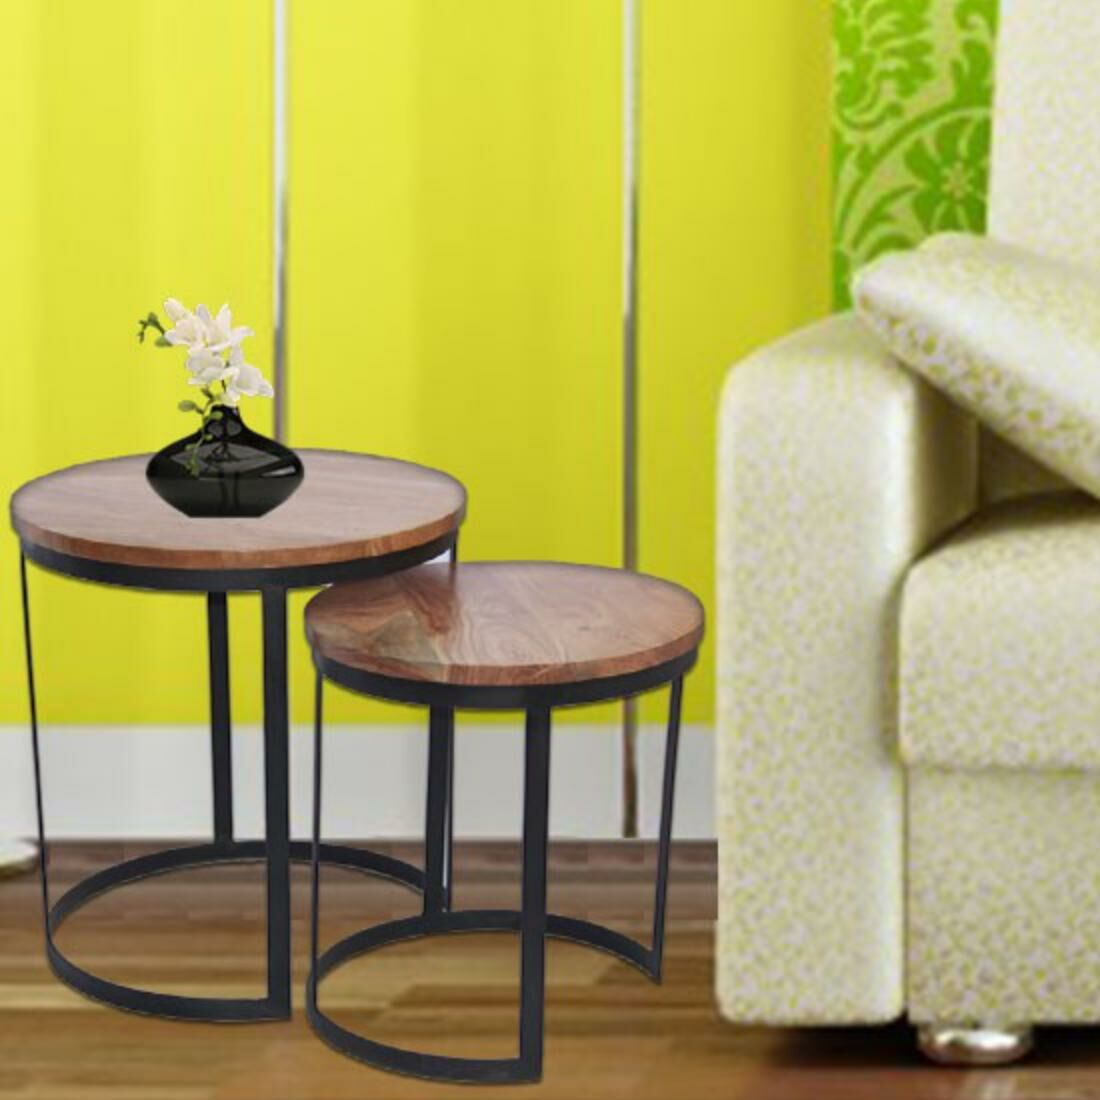 Aulay Iron 2 Piece Nesting Tables